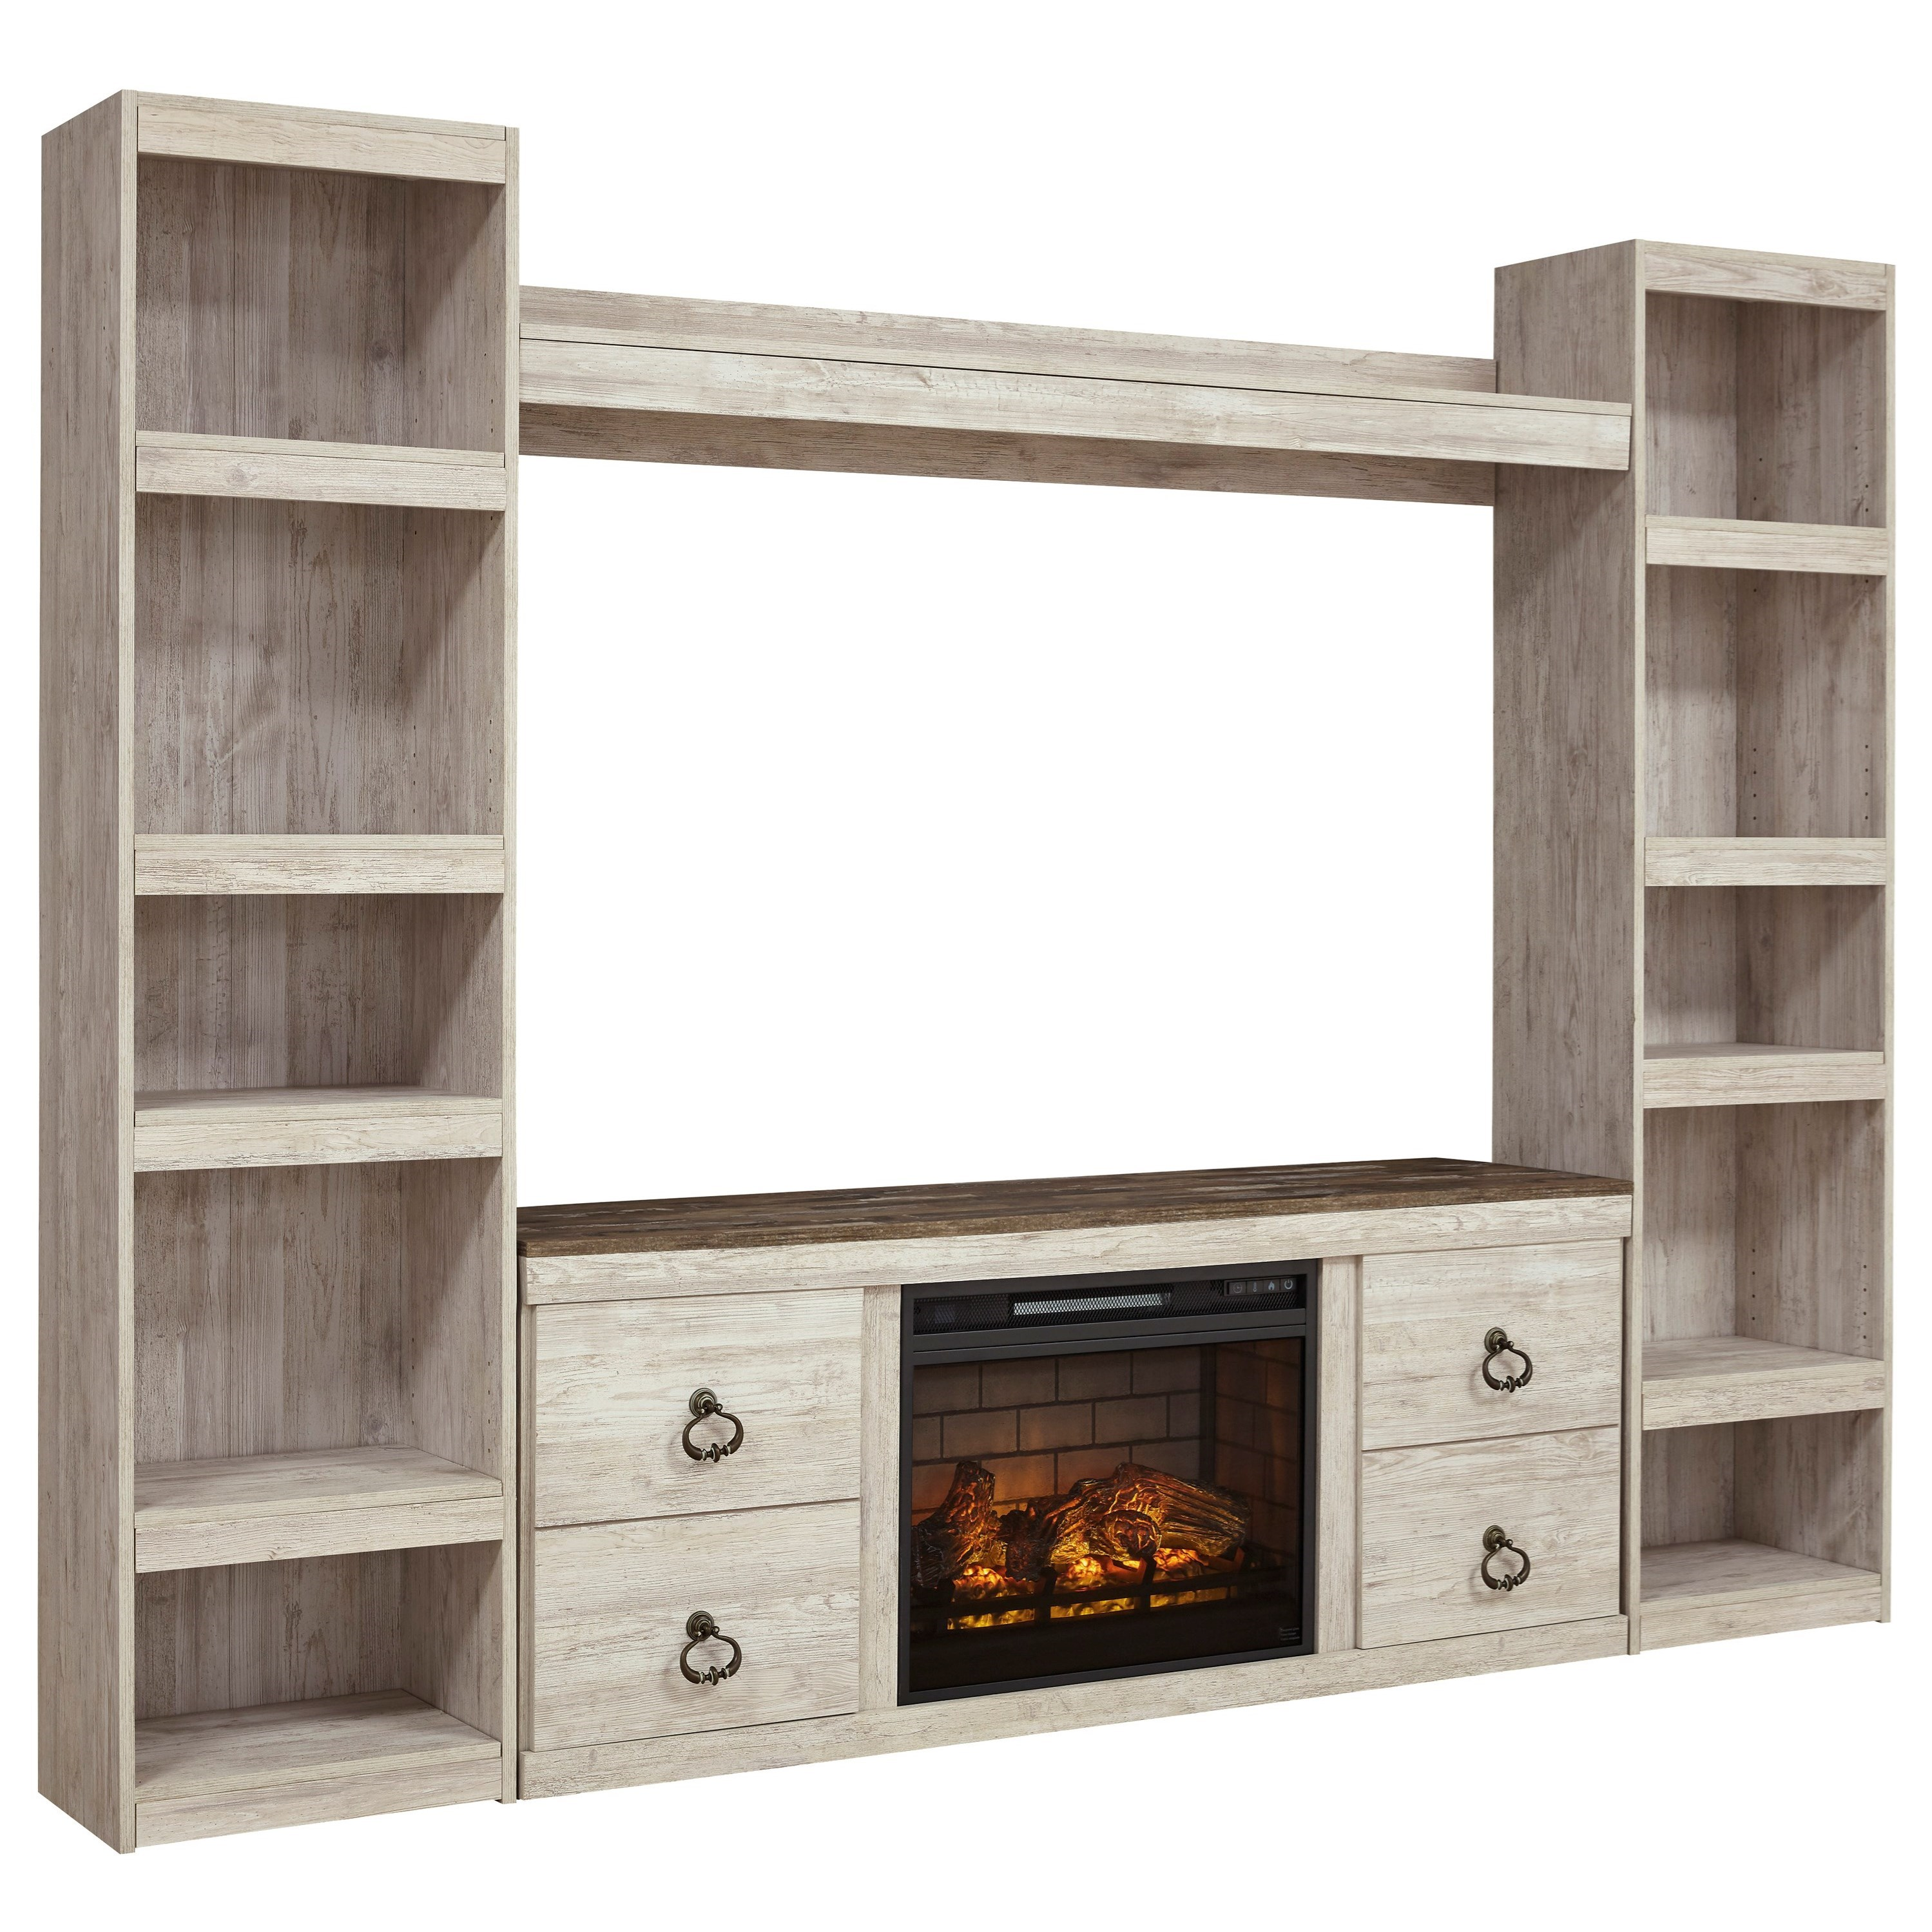 Willowton Entertainment Wall Unit by Signature Design by Ashley at Northeast Factory Direct